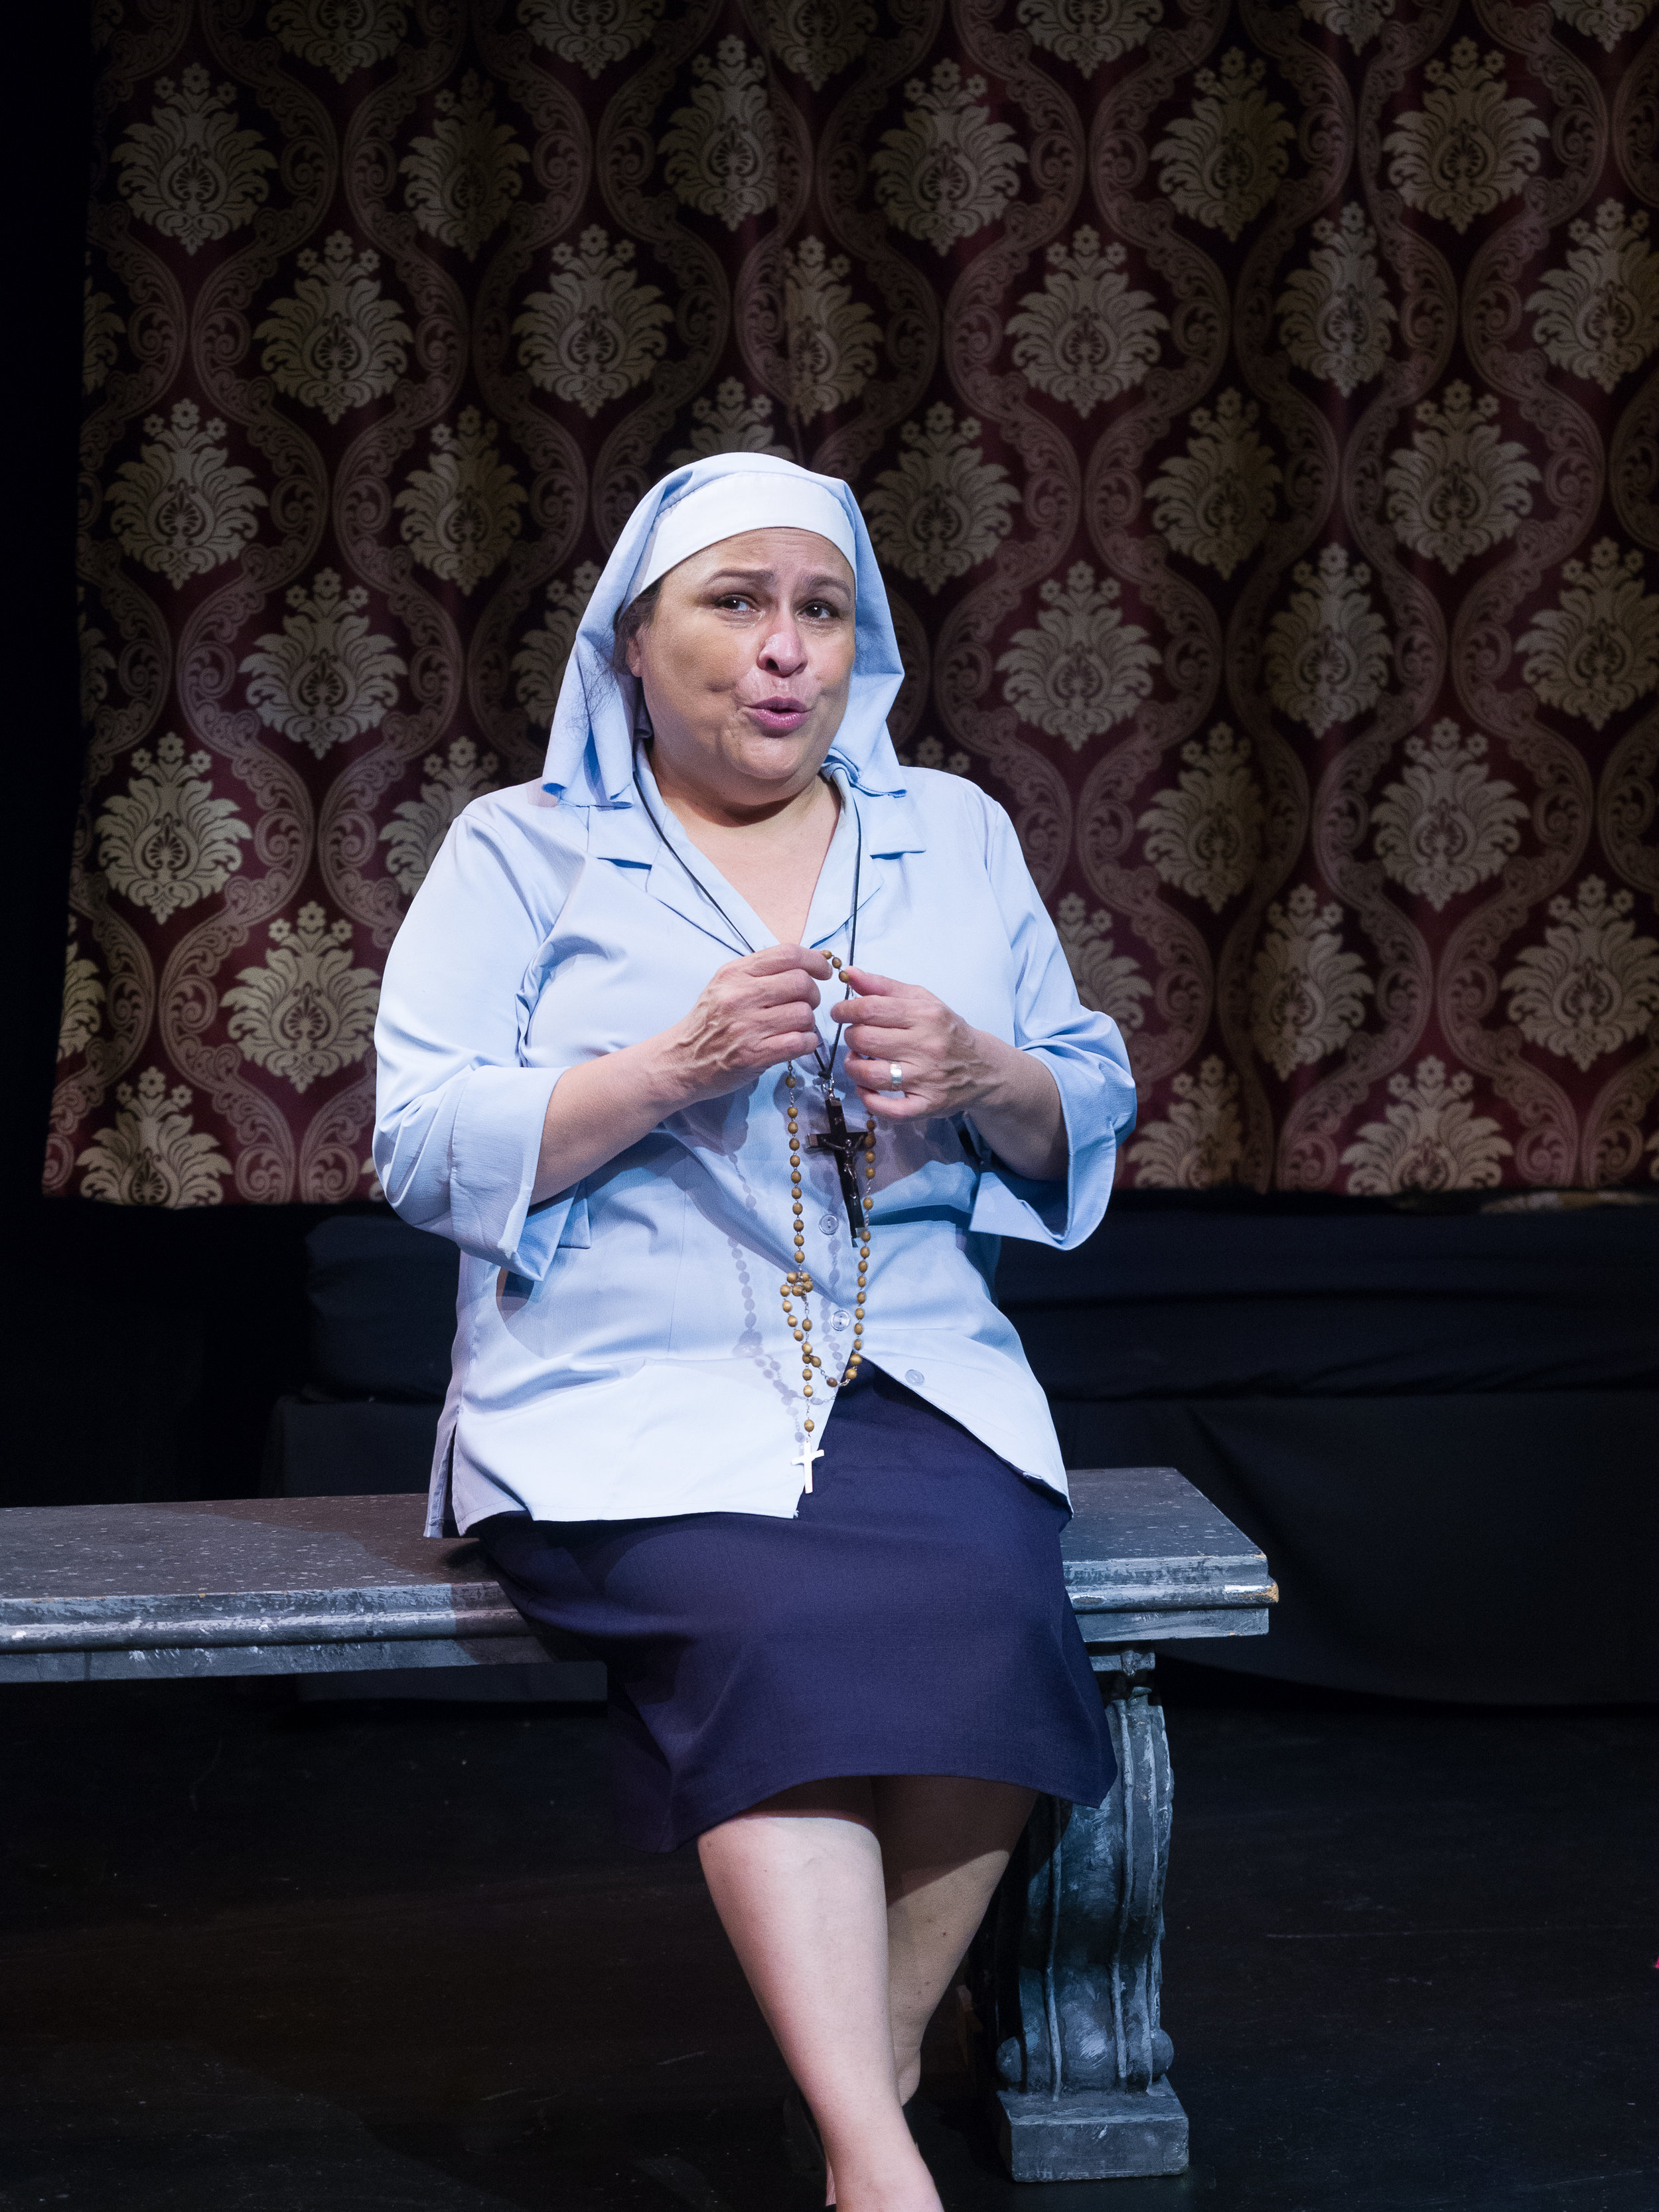 Martha Chaves as Sister Bibiana. Set and Costumes by Jan Venus; lighting design by Waleed Ansari. Photography by Rene Stakenborg.